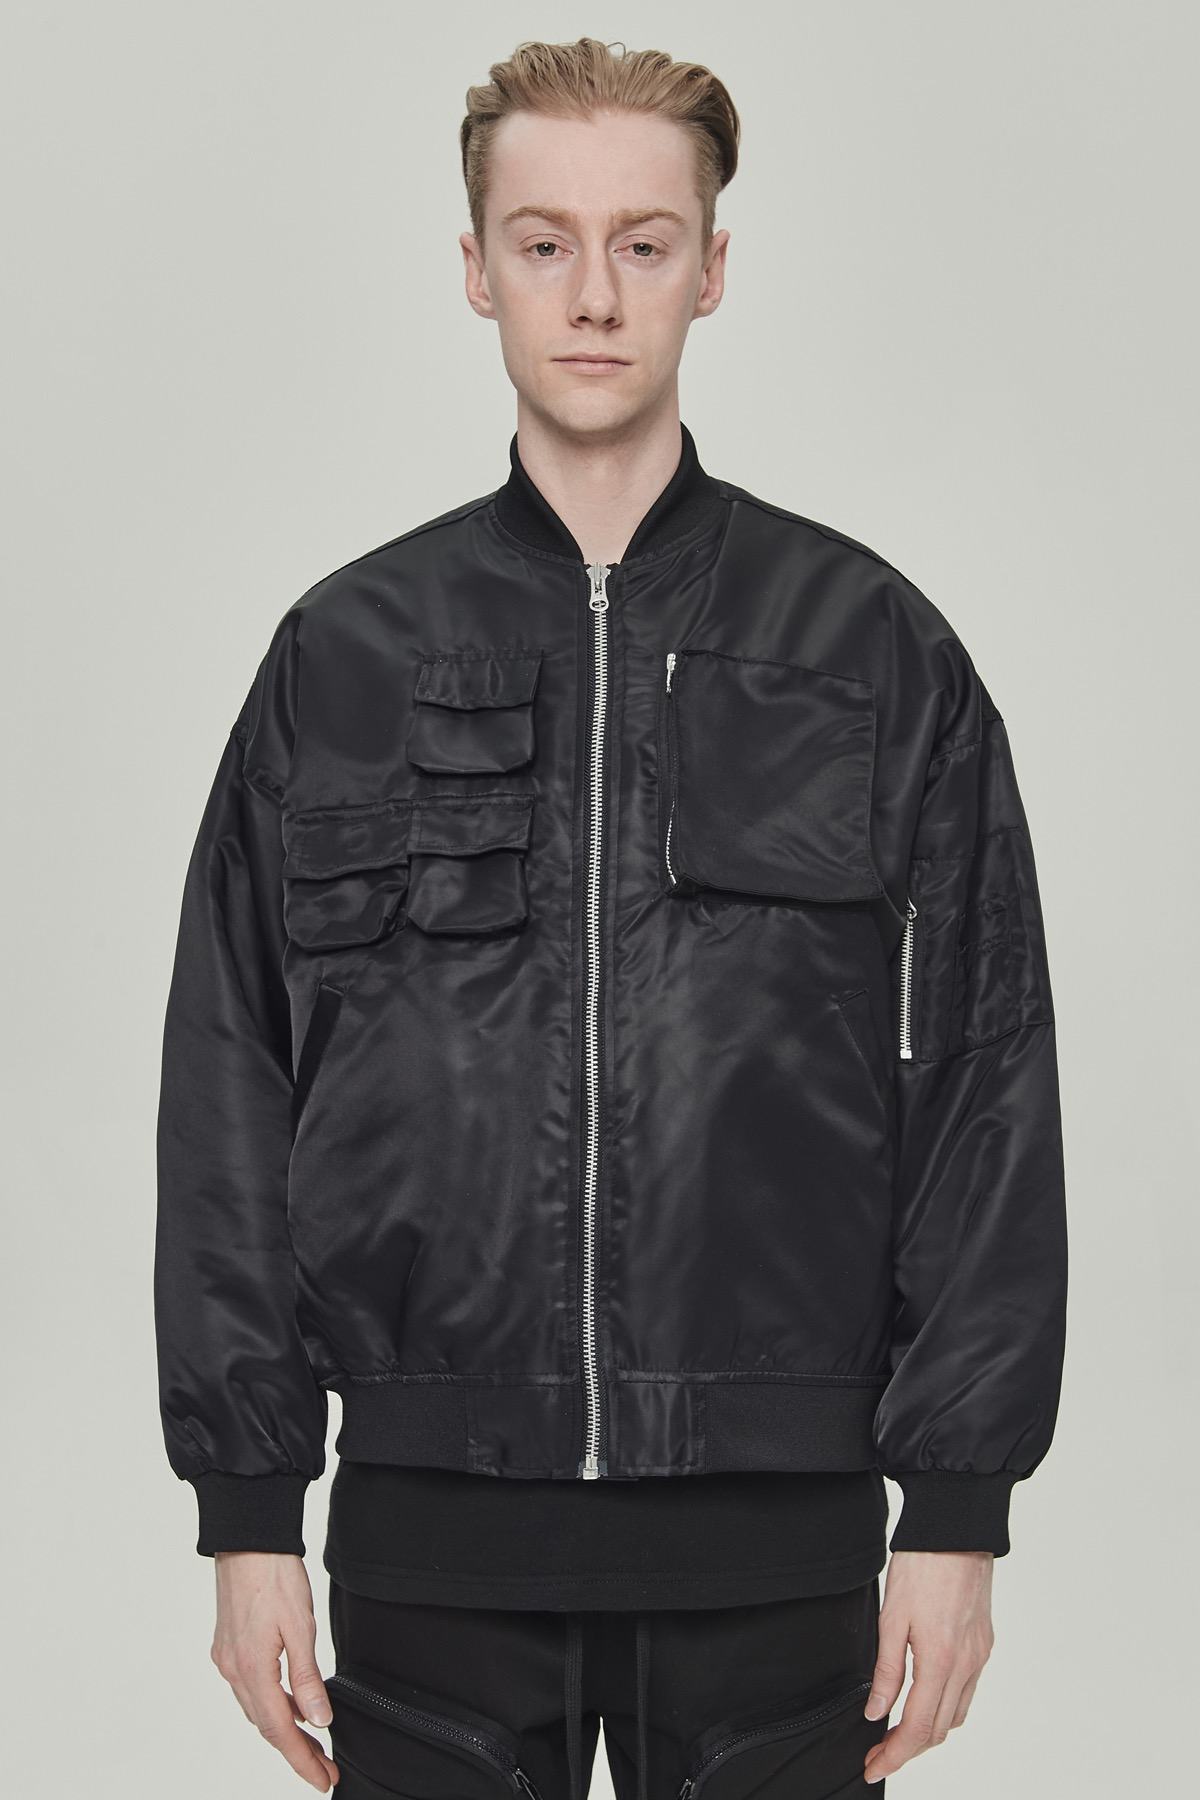 BLACK MULTI POCKET MA-1 BOMBER JACKET